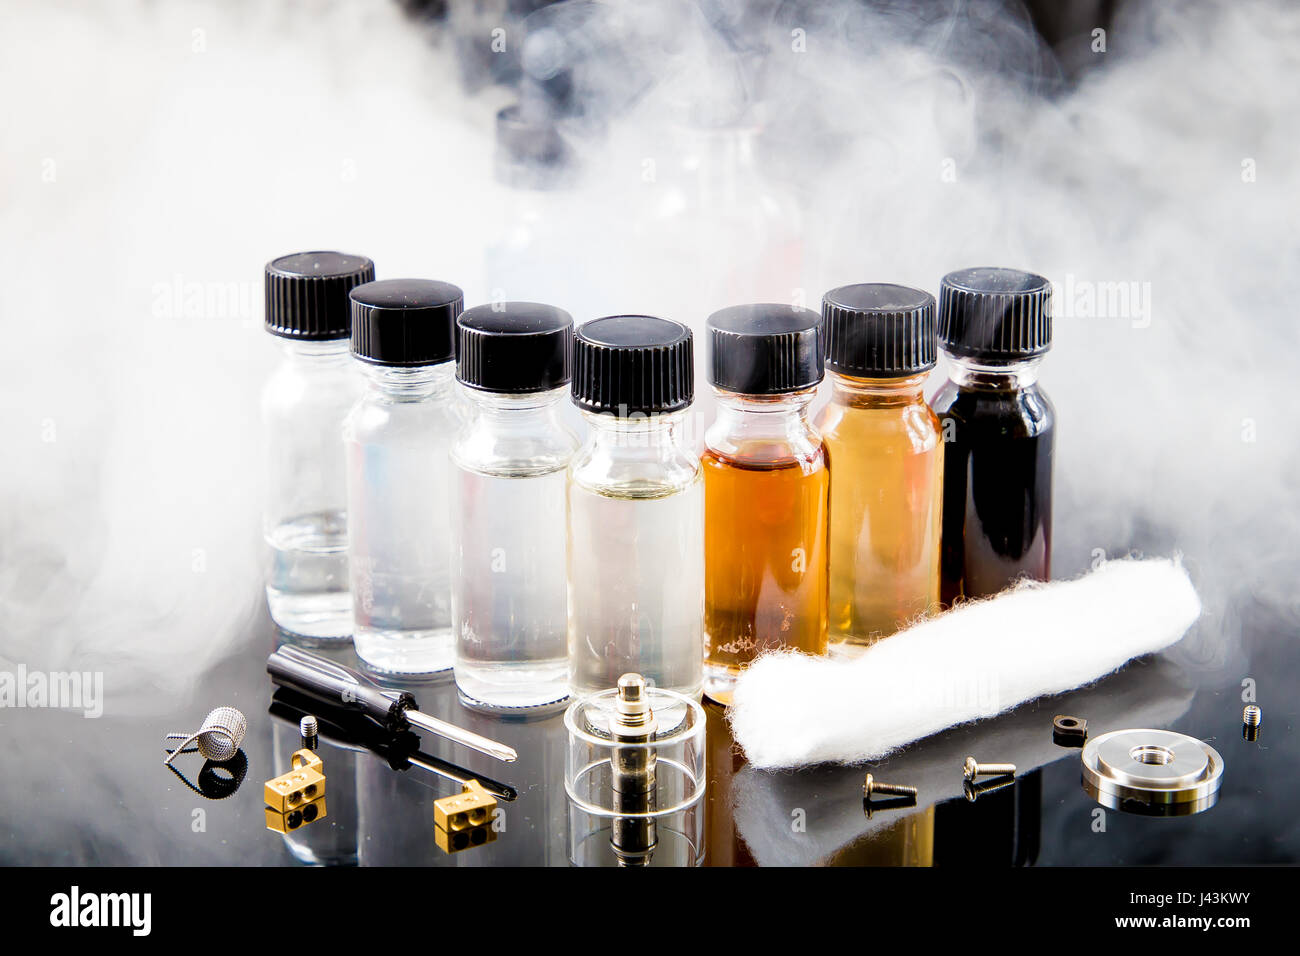 Vaporizer smoke with juice bottles, screwdriver and cotton wick with tools - Stock Image